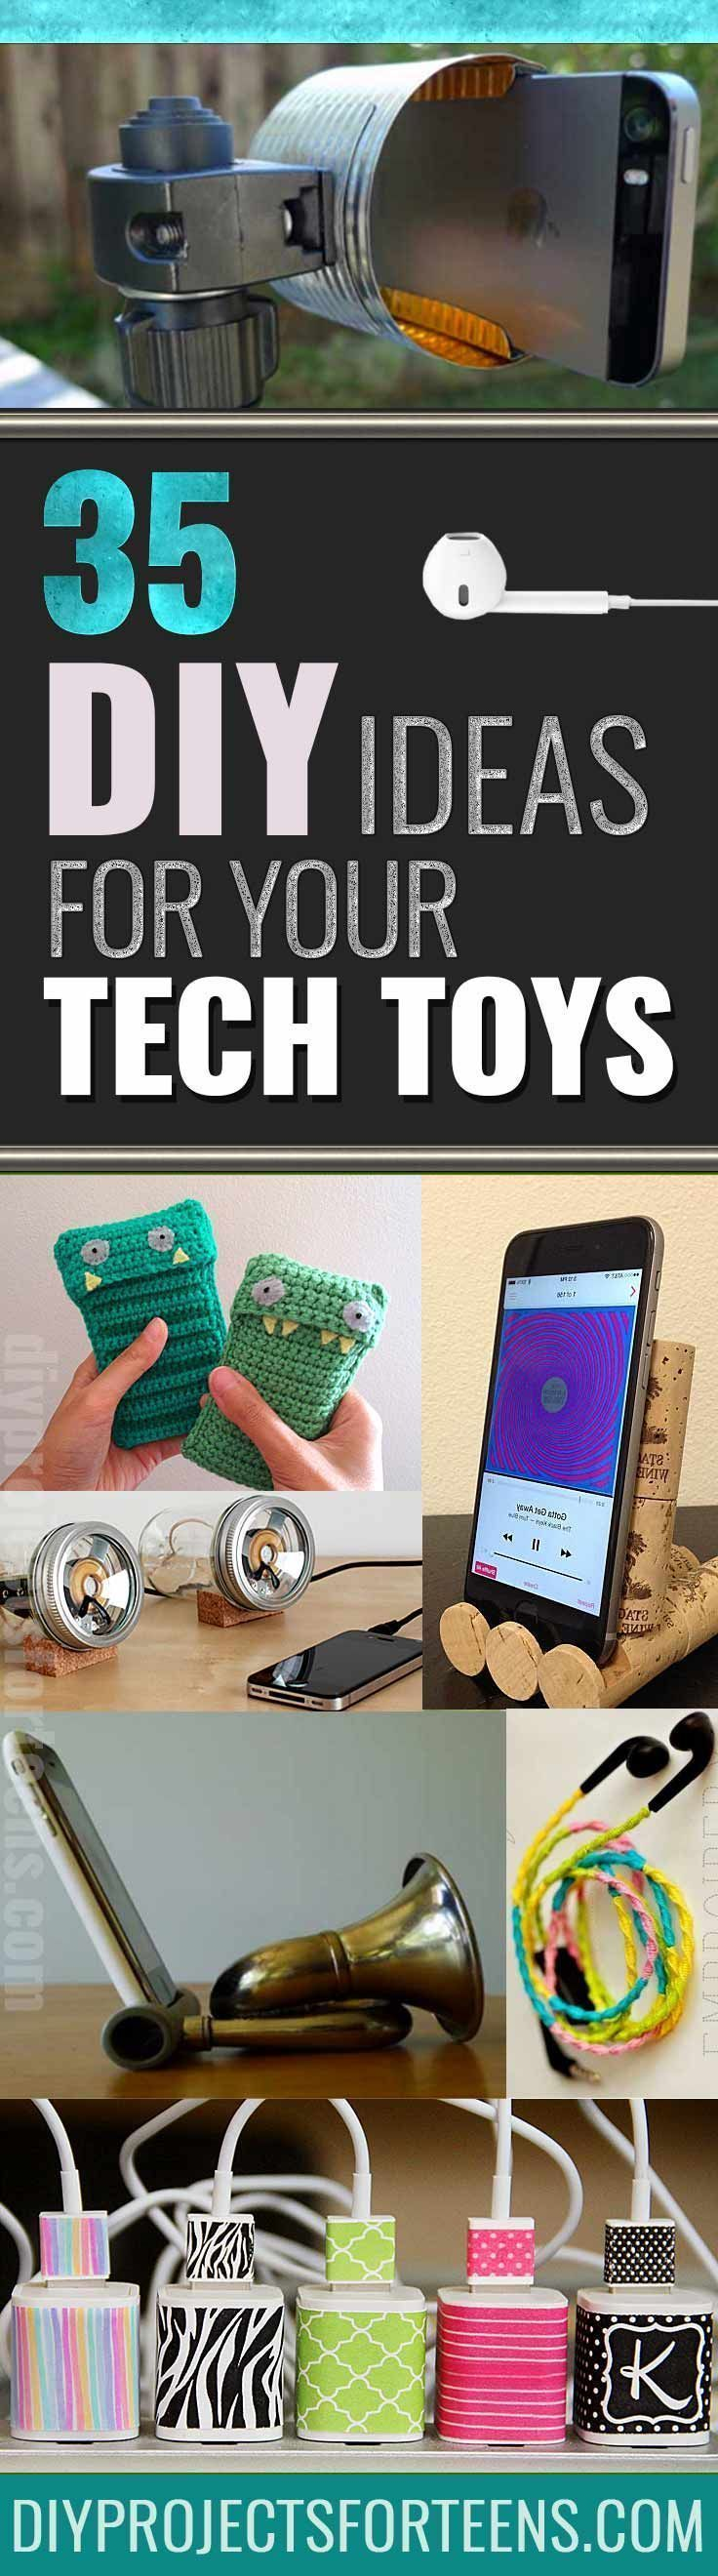 35 Awesome Diys For Your Tech Toys Diy For Teens Cool